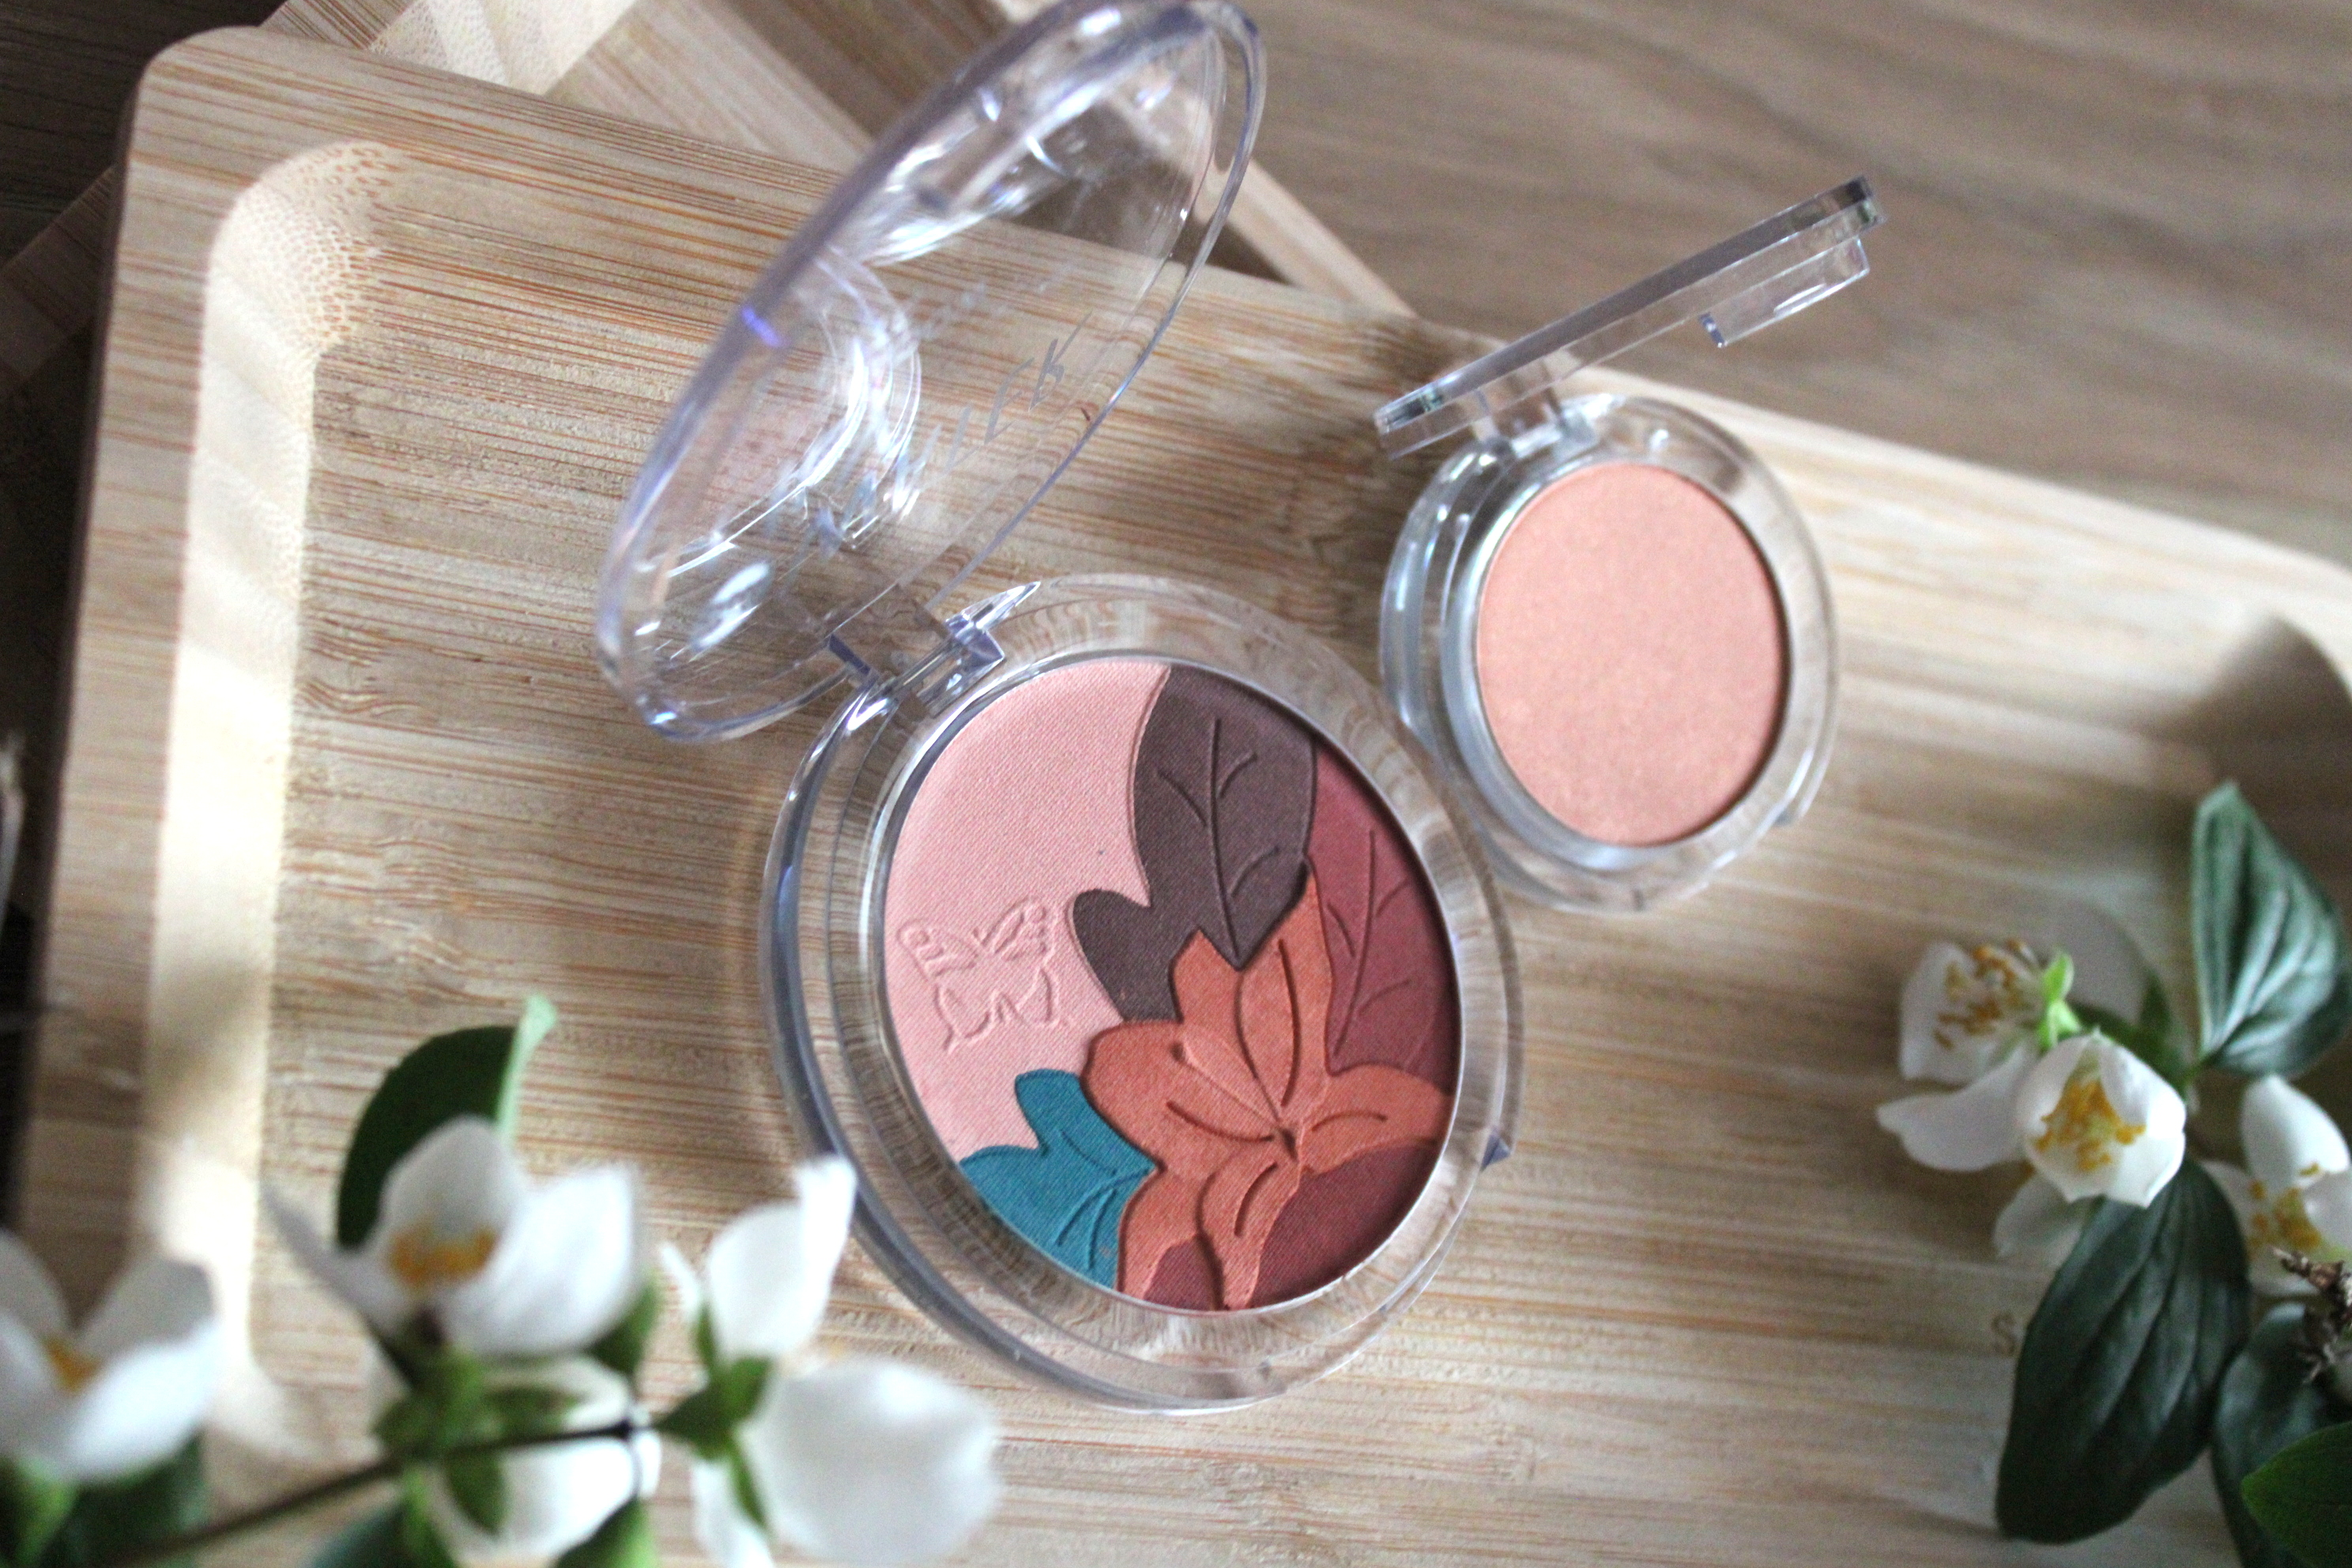 Sun Tan Blush Bell Cosmetics